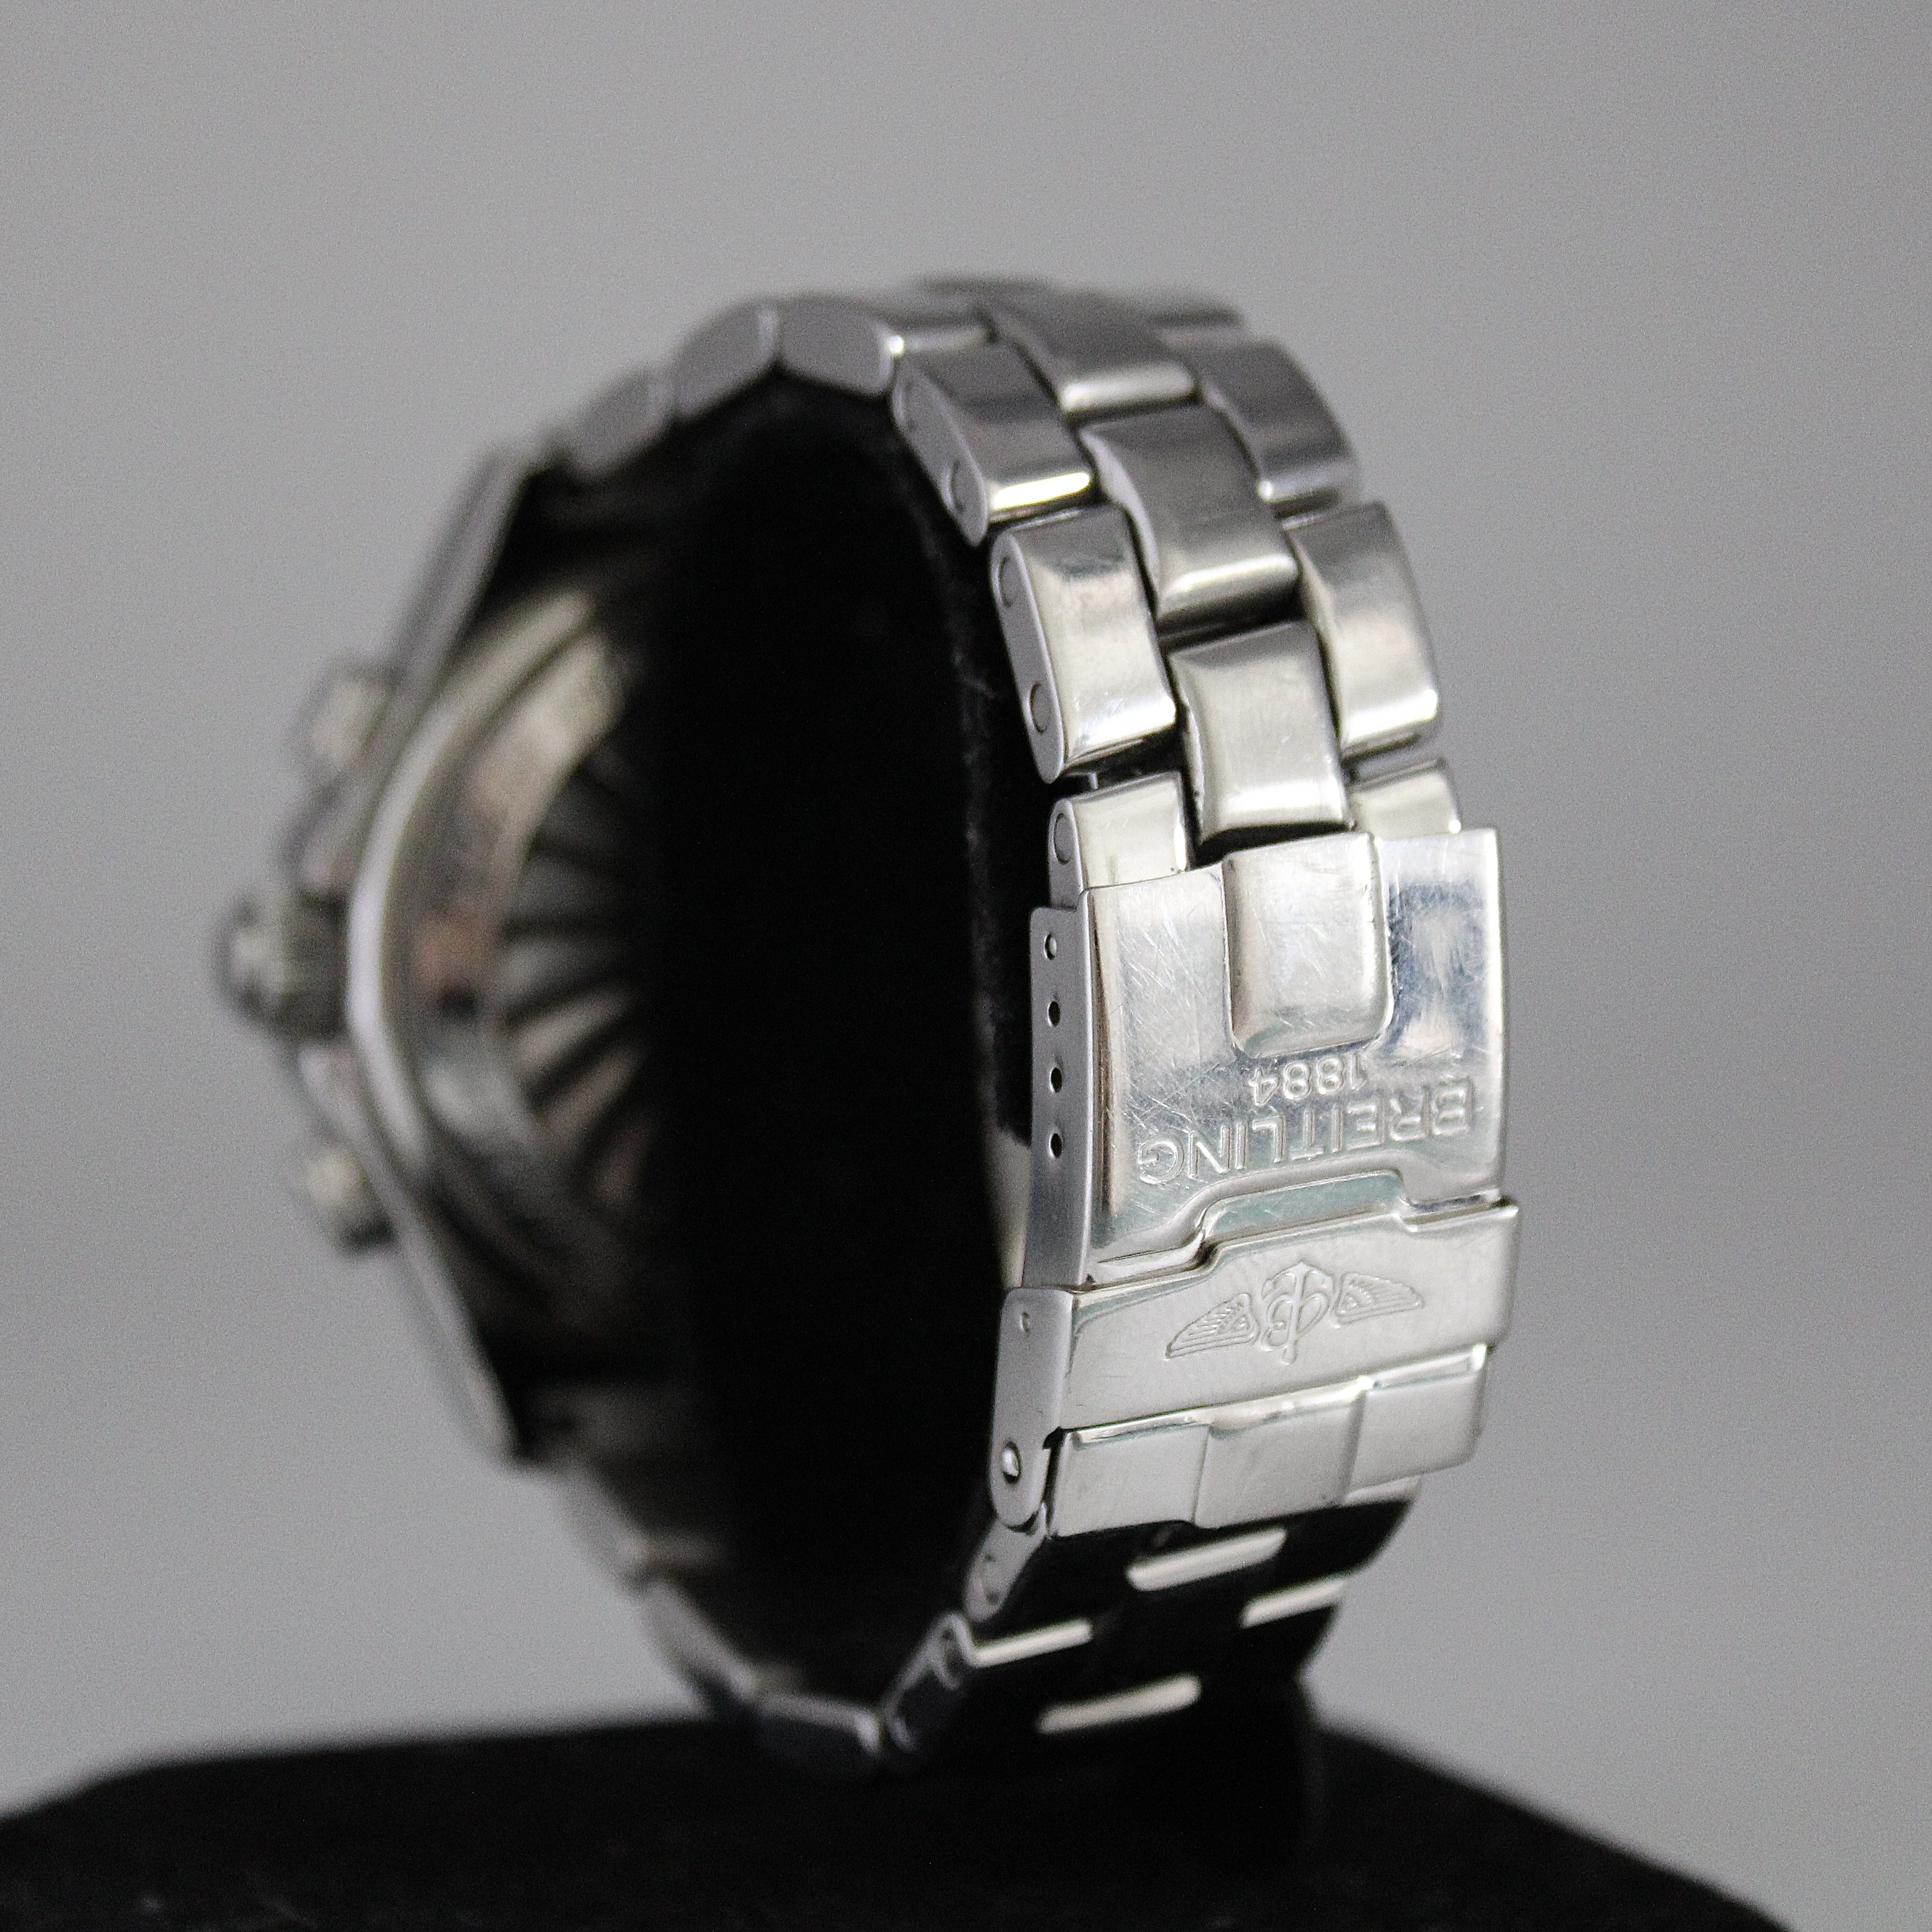 Breitling B1 ref A68062 - Image 3 of 4